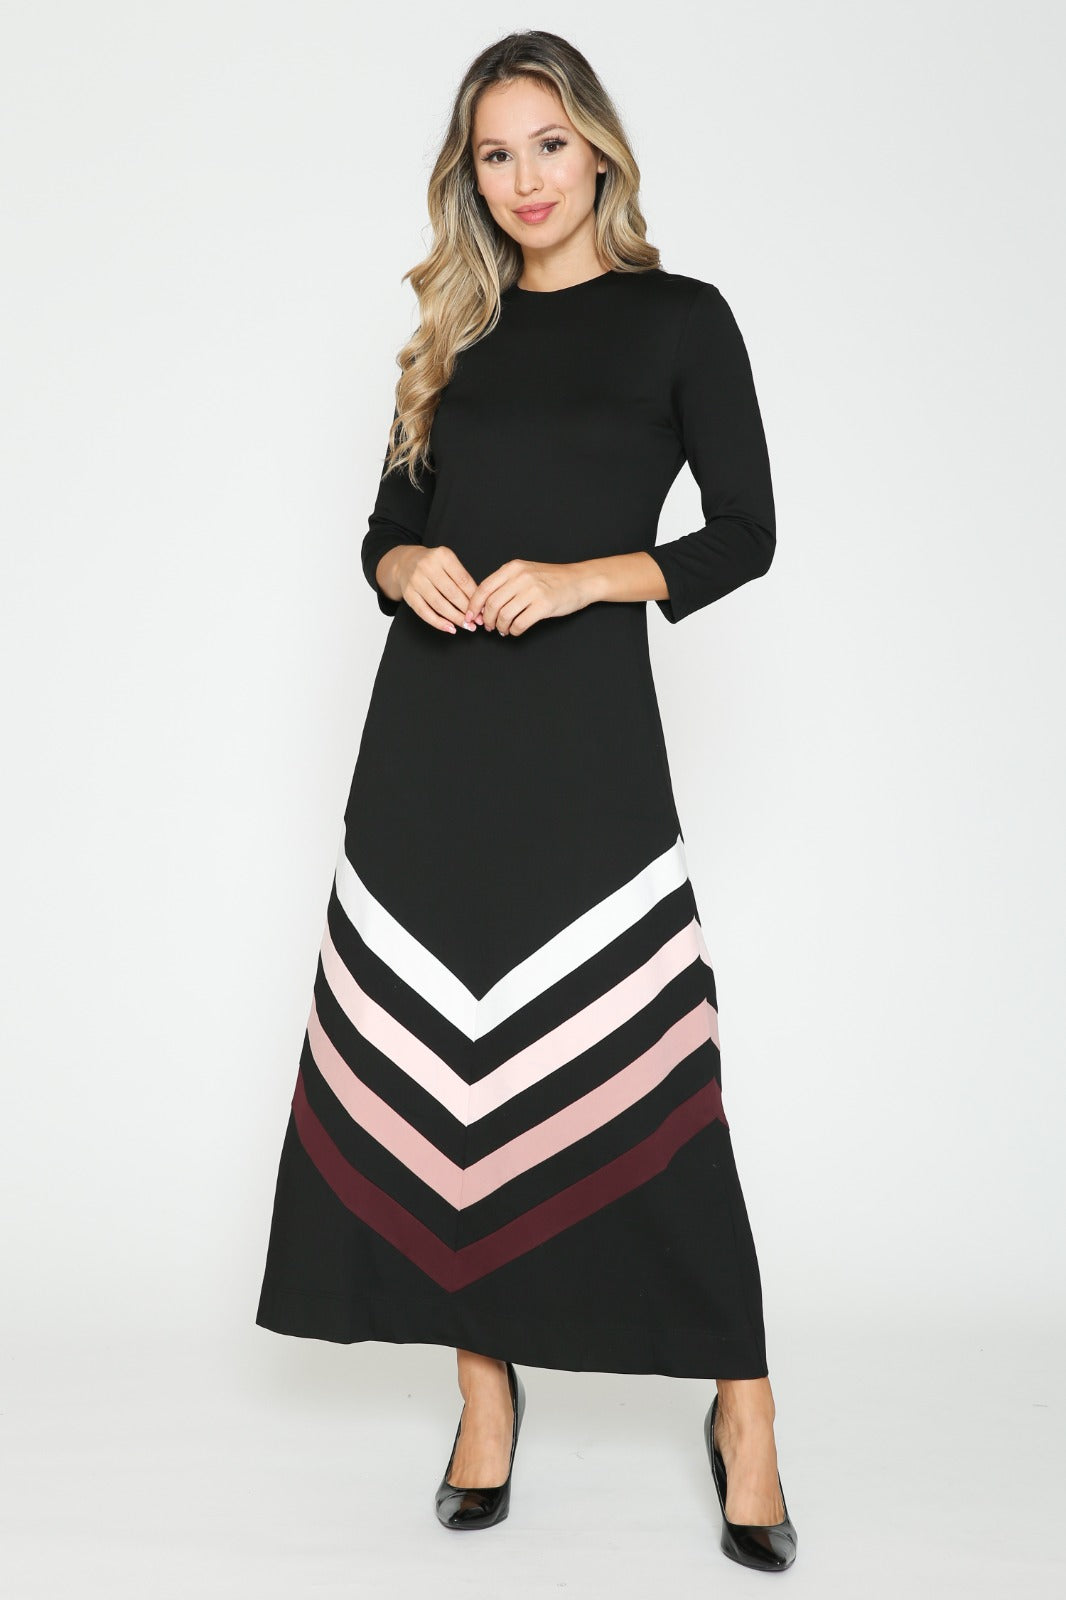 Chevron Stripes Dress